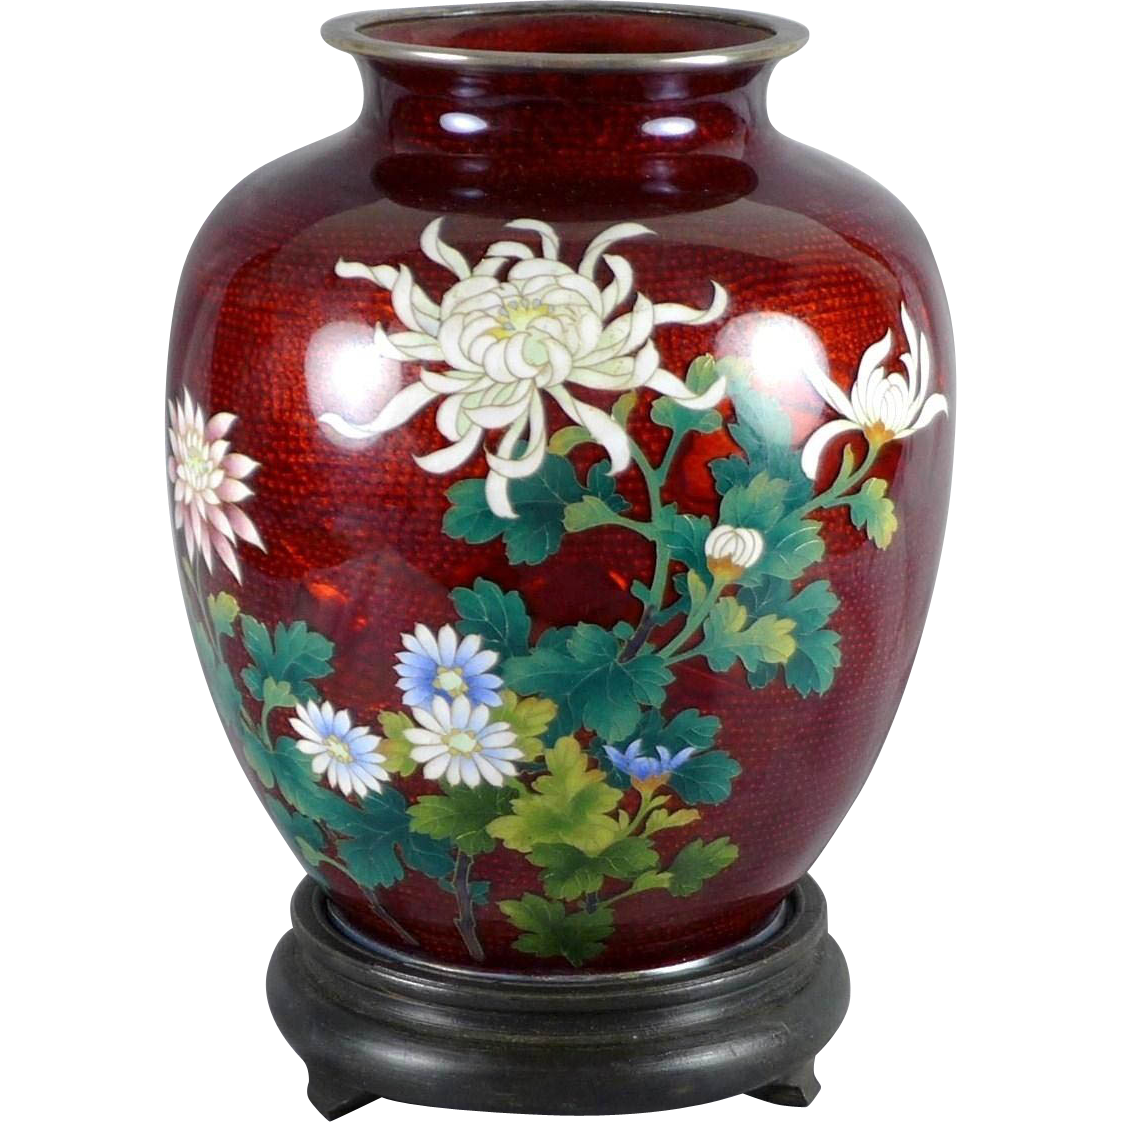 Japanese sato cloisonne vase with silver trim sold ruby lane reviewsmspy